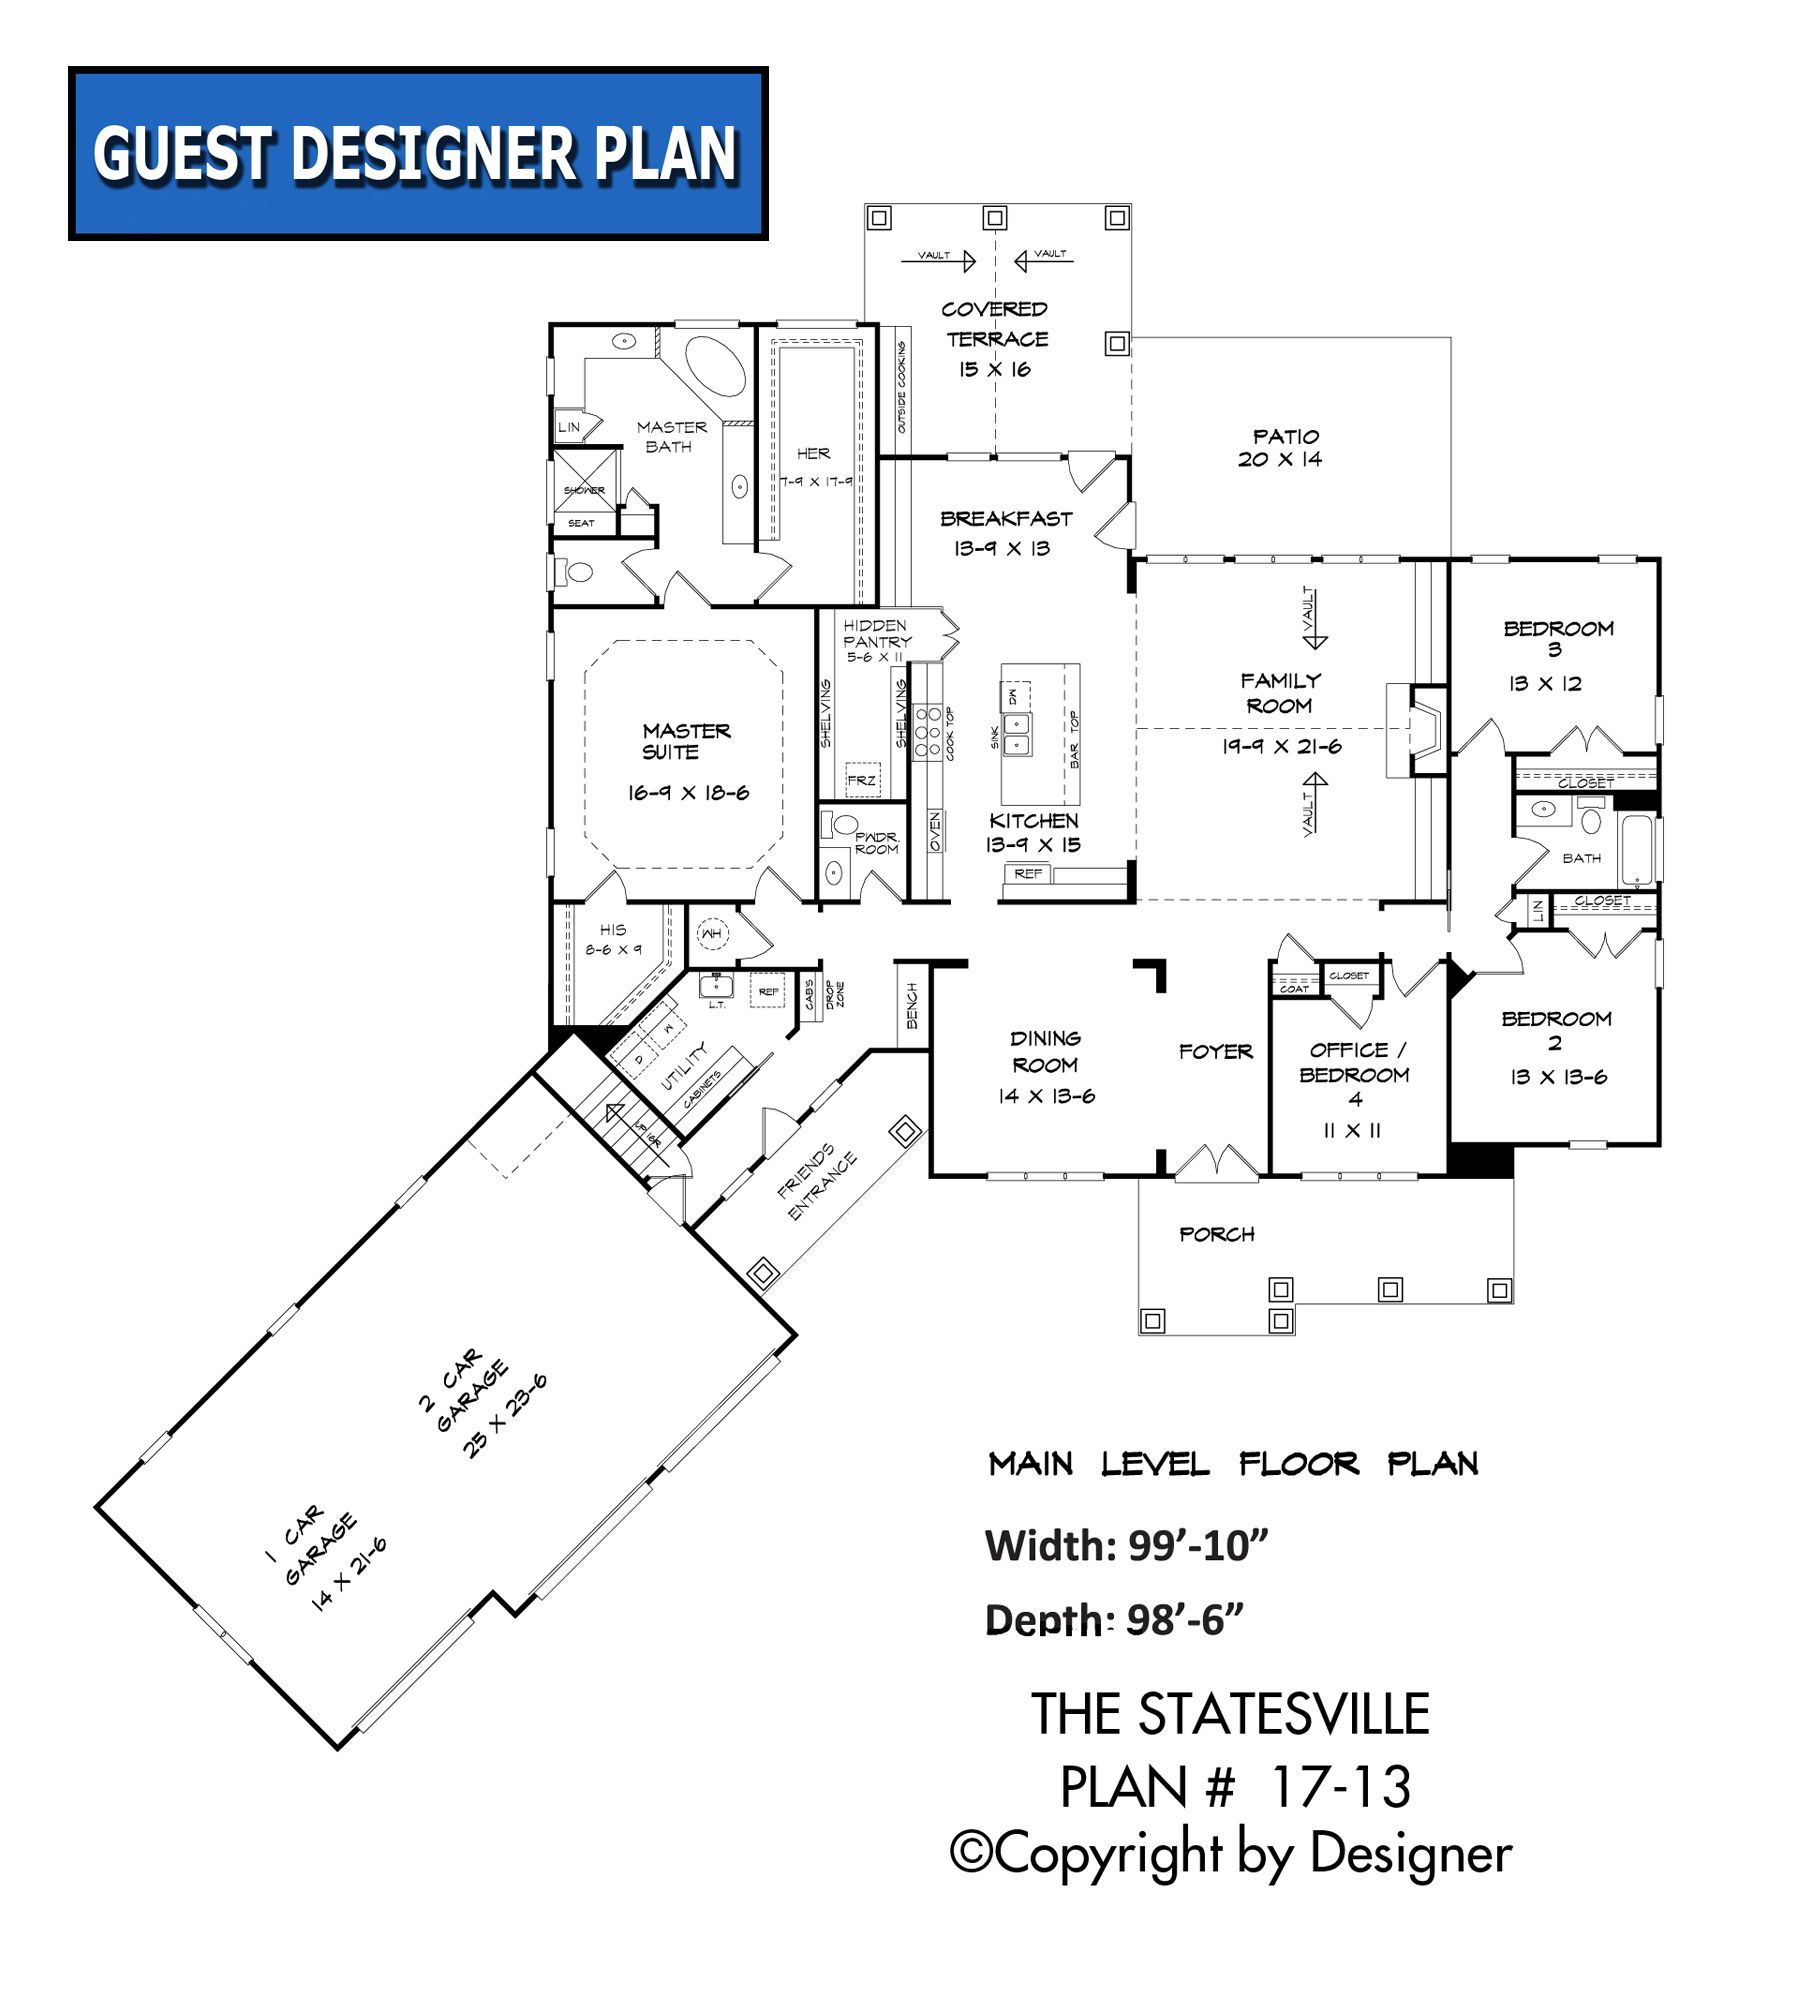 statesville house plan 17 13 garrell associates inc